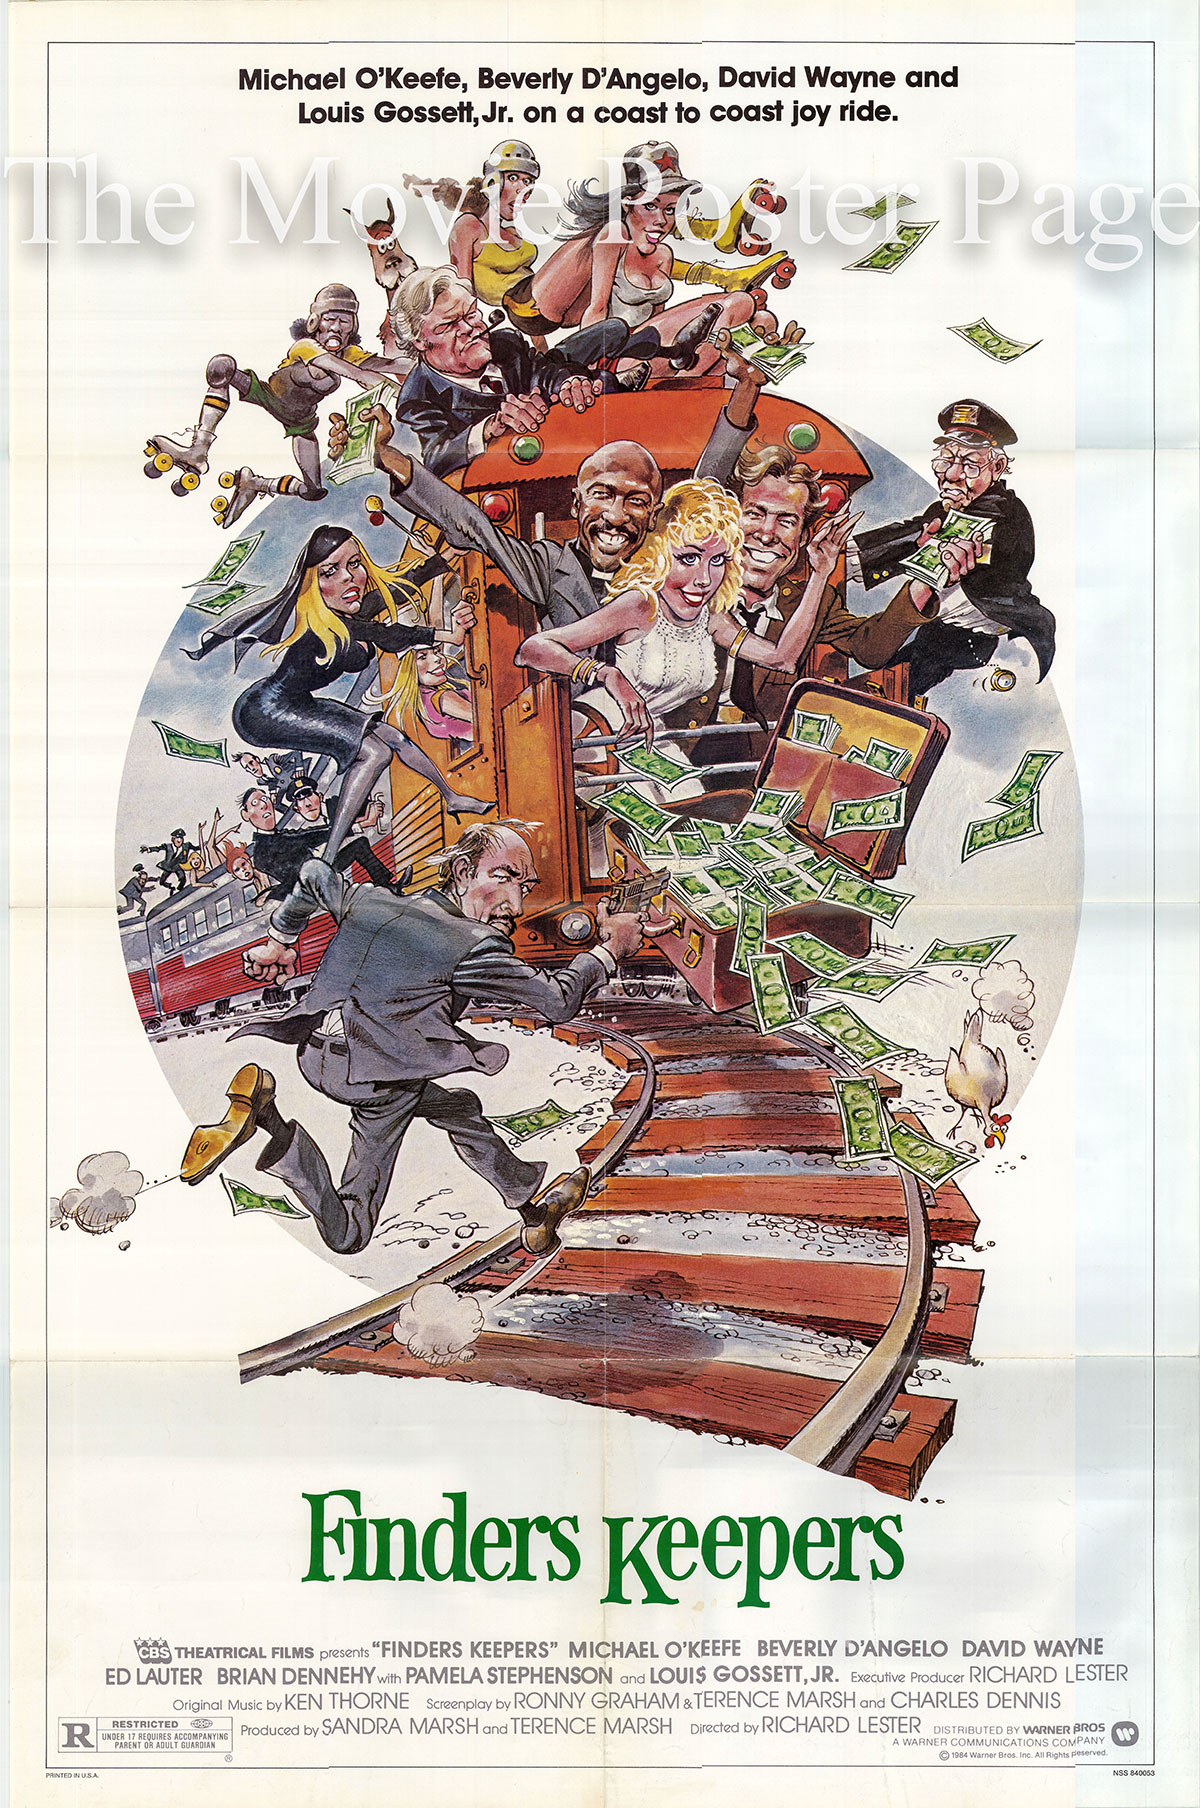 Pictured is a US one-sheet poster for the 1984 Richard Lester film Finders Keepers starring Michael O'Keefe as Michael Rangeloff.